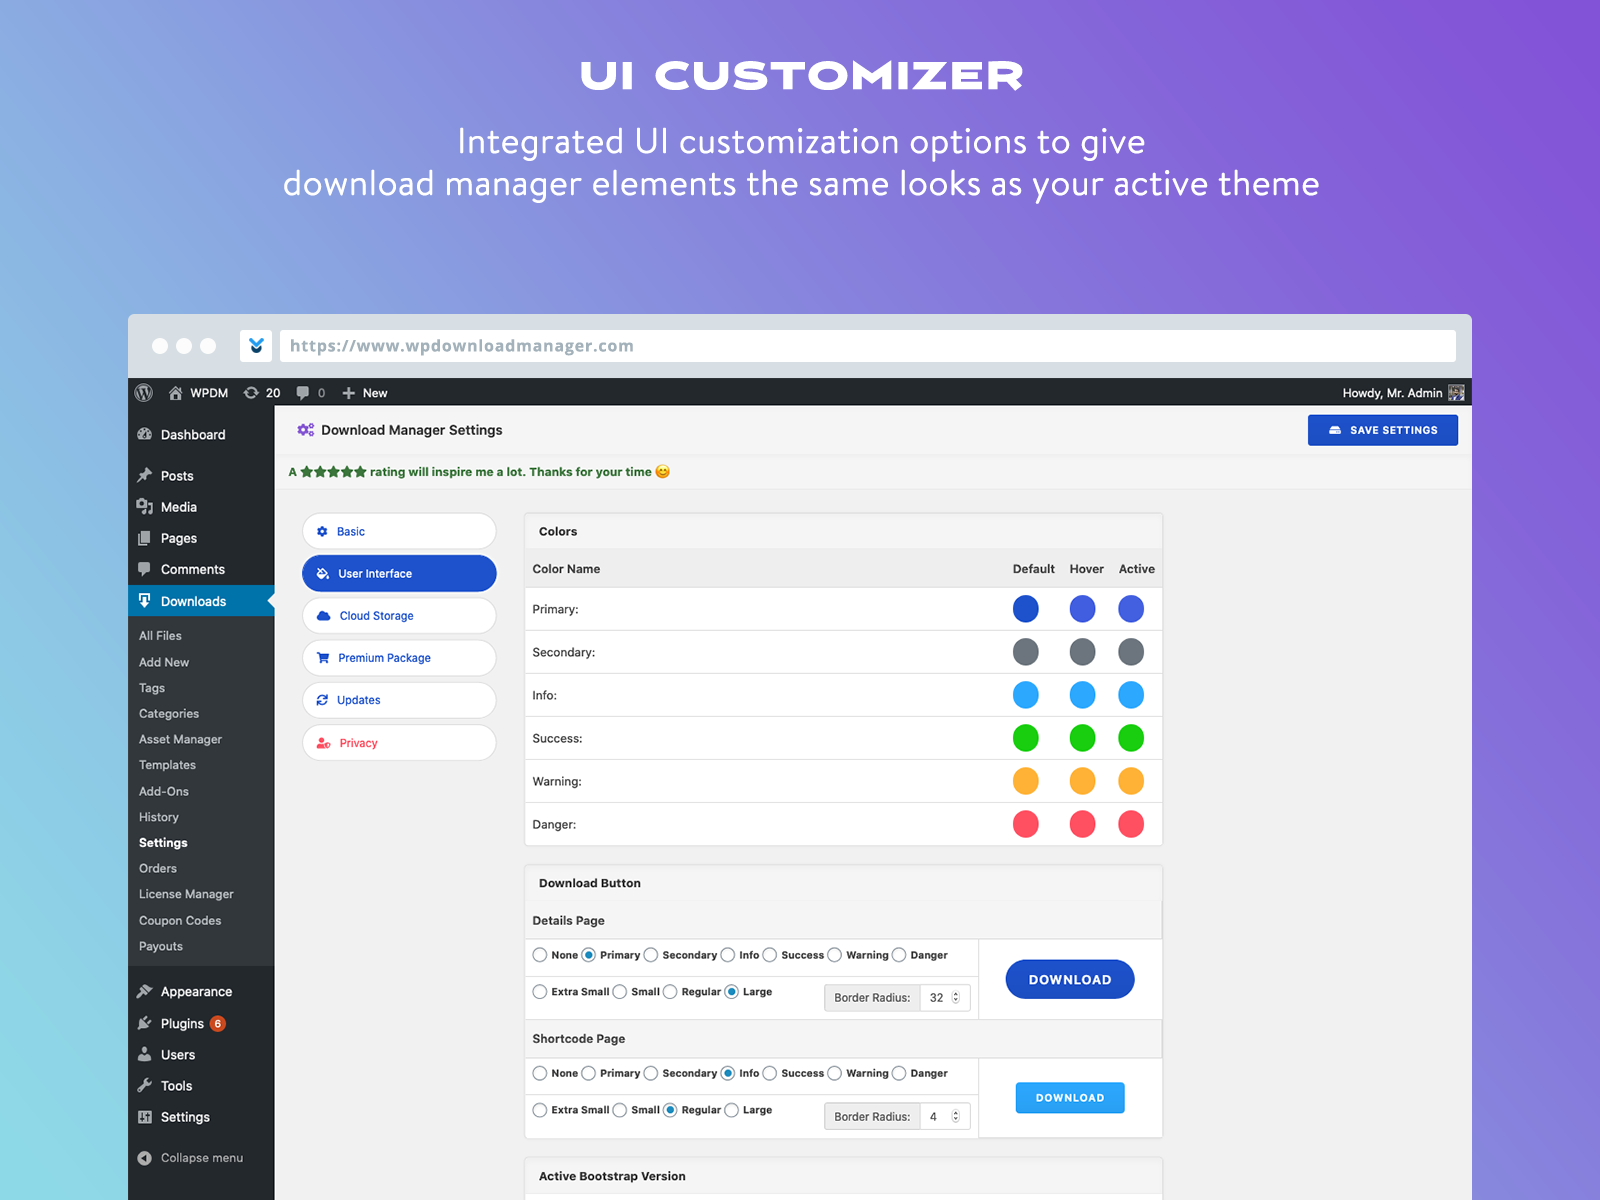 UI customizer